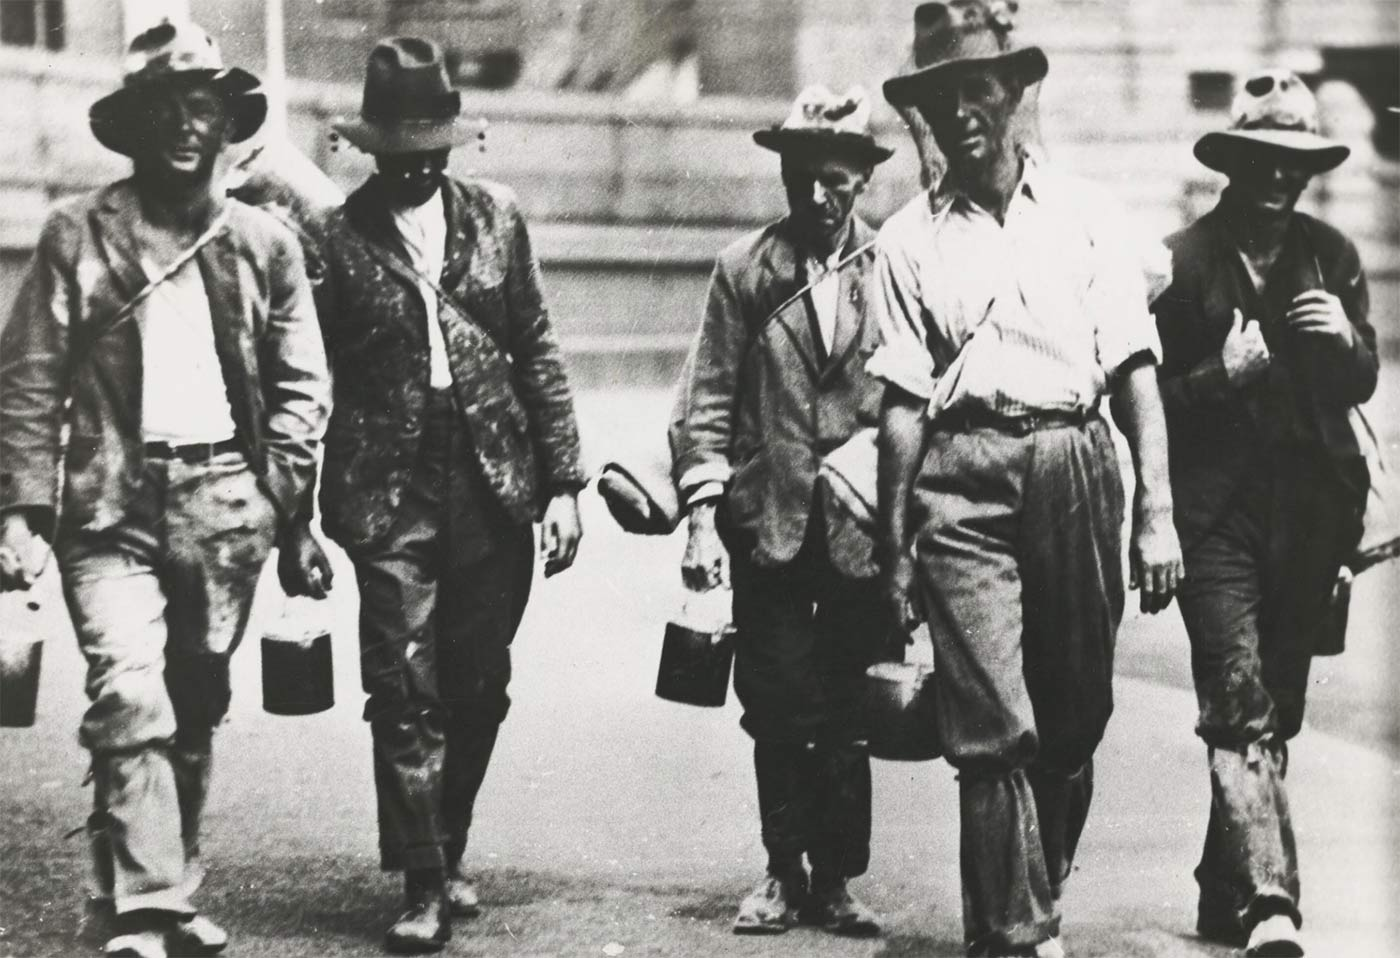 Five men walking towards the camera dressed in shabby clothes. Most are carrying swags and bill cans